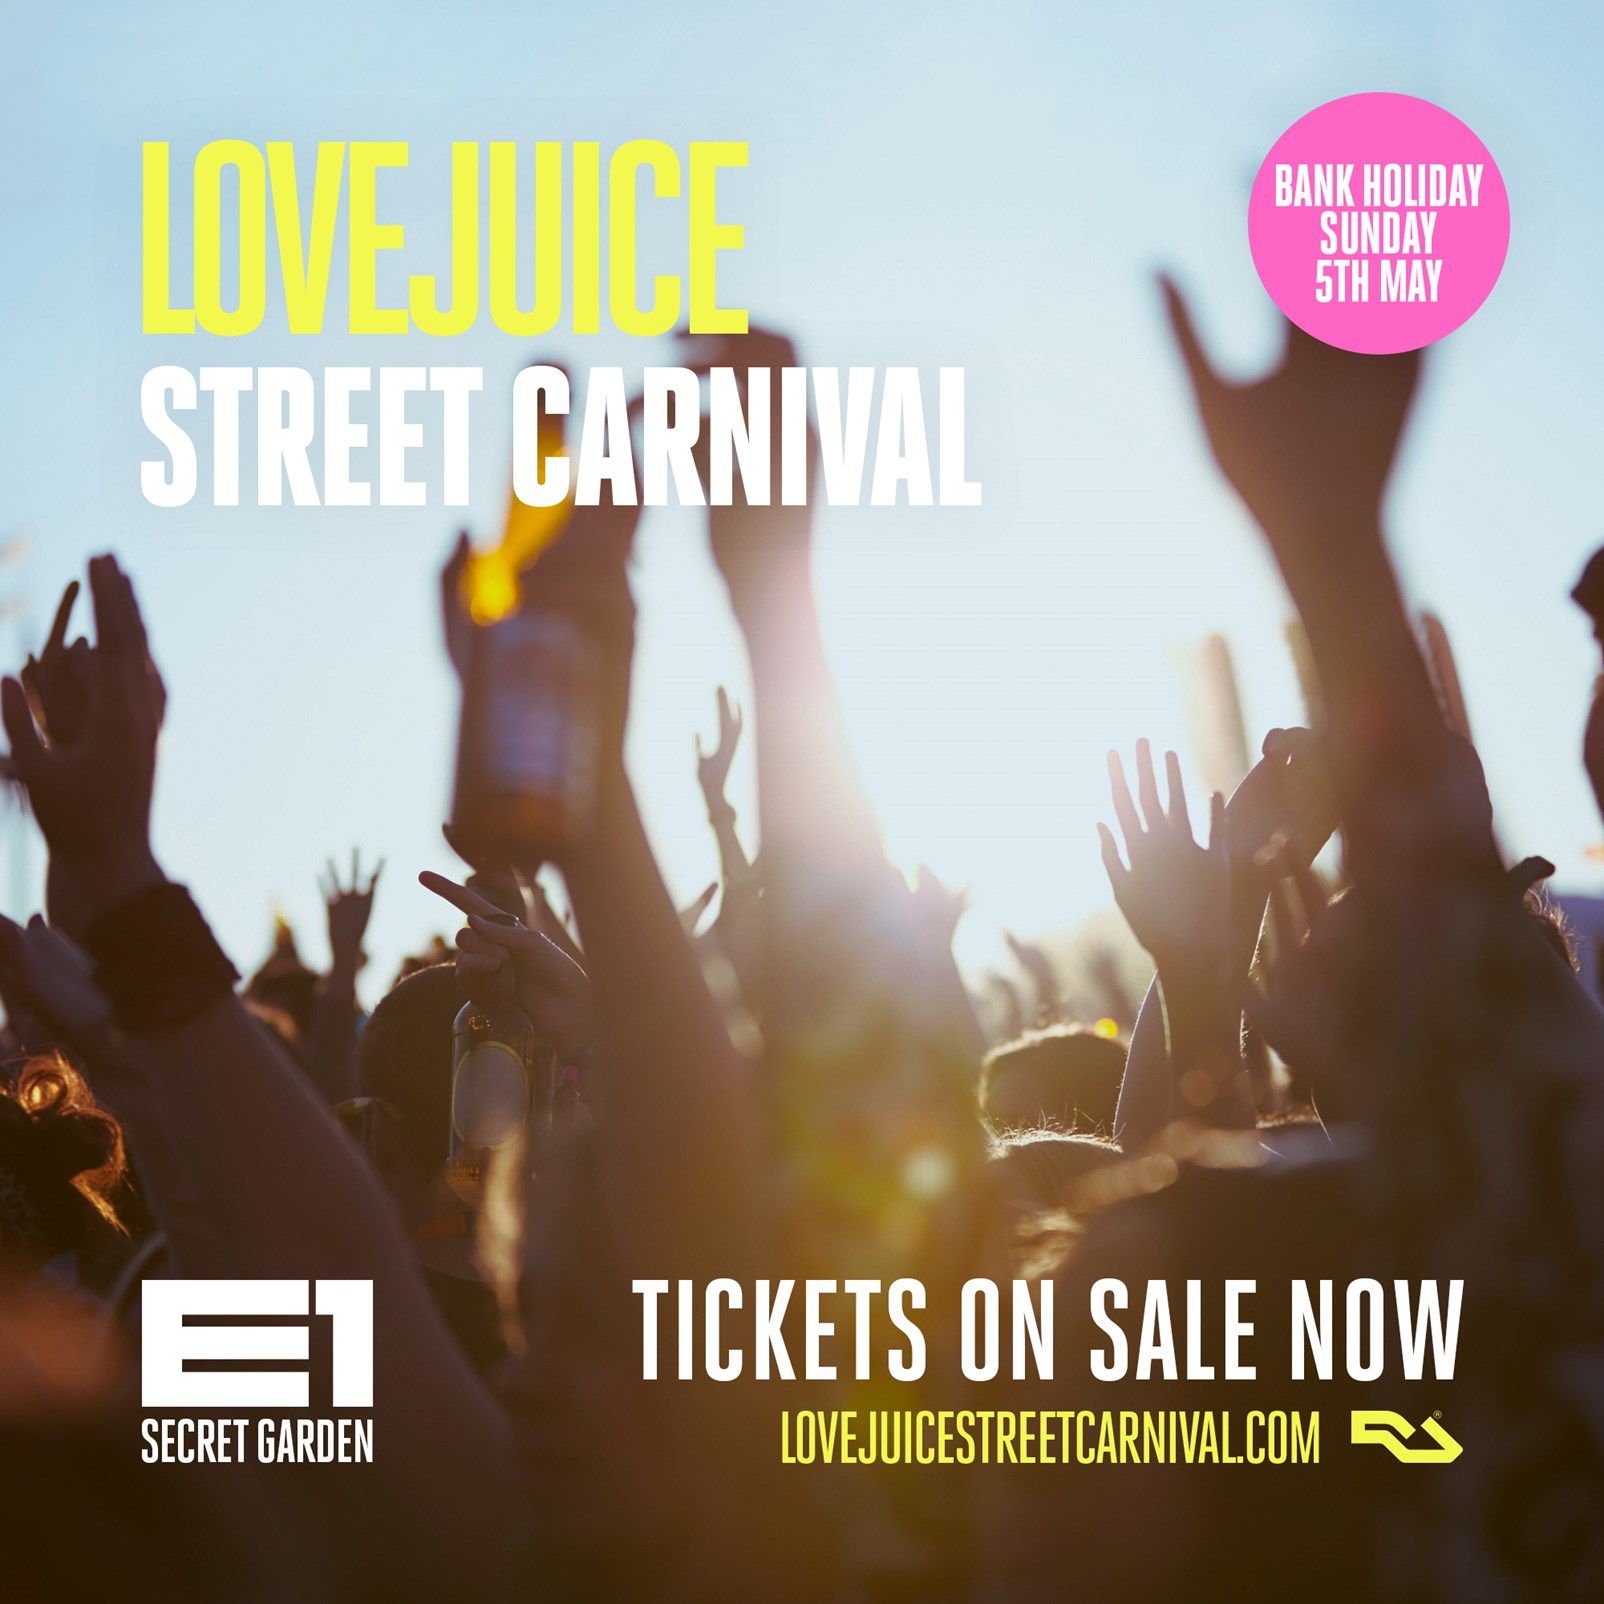 LoveJuice Street Carnival - 5th May 2019